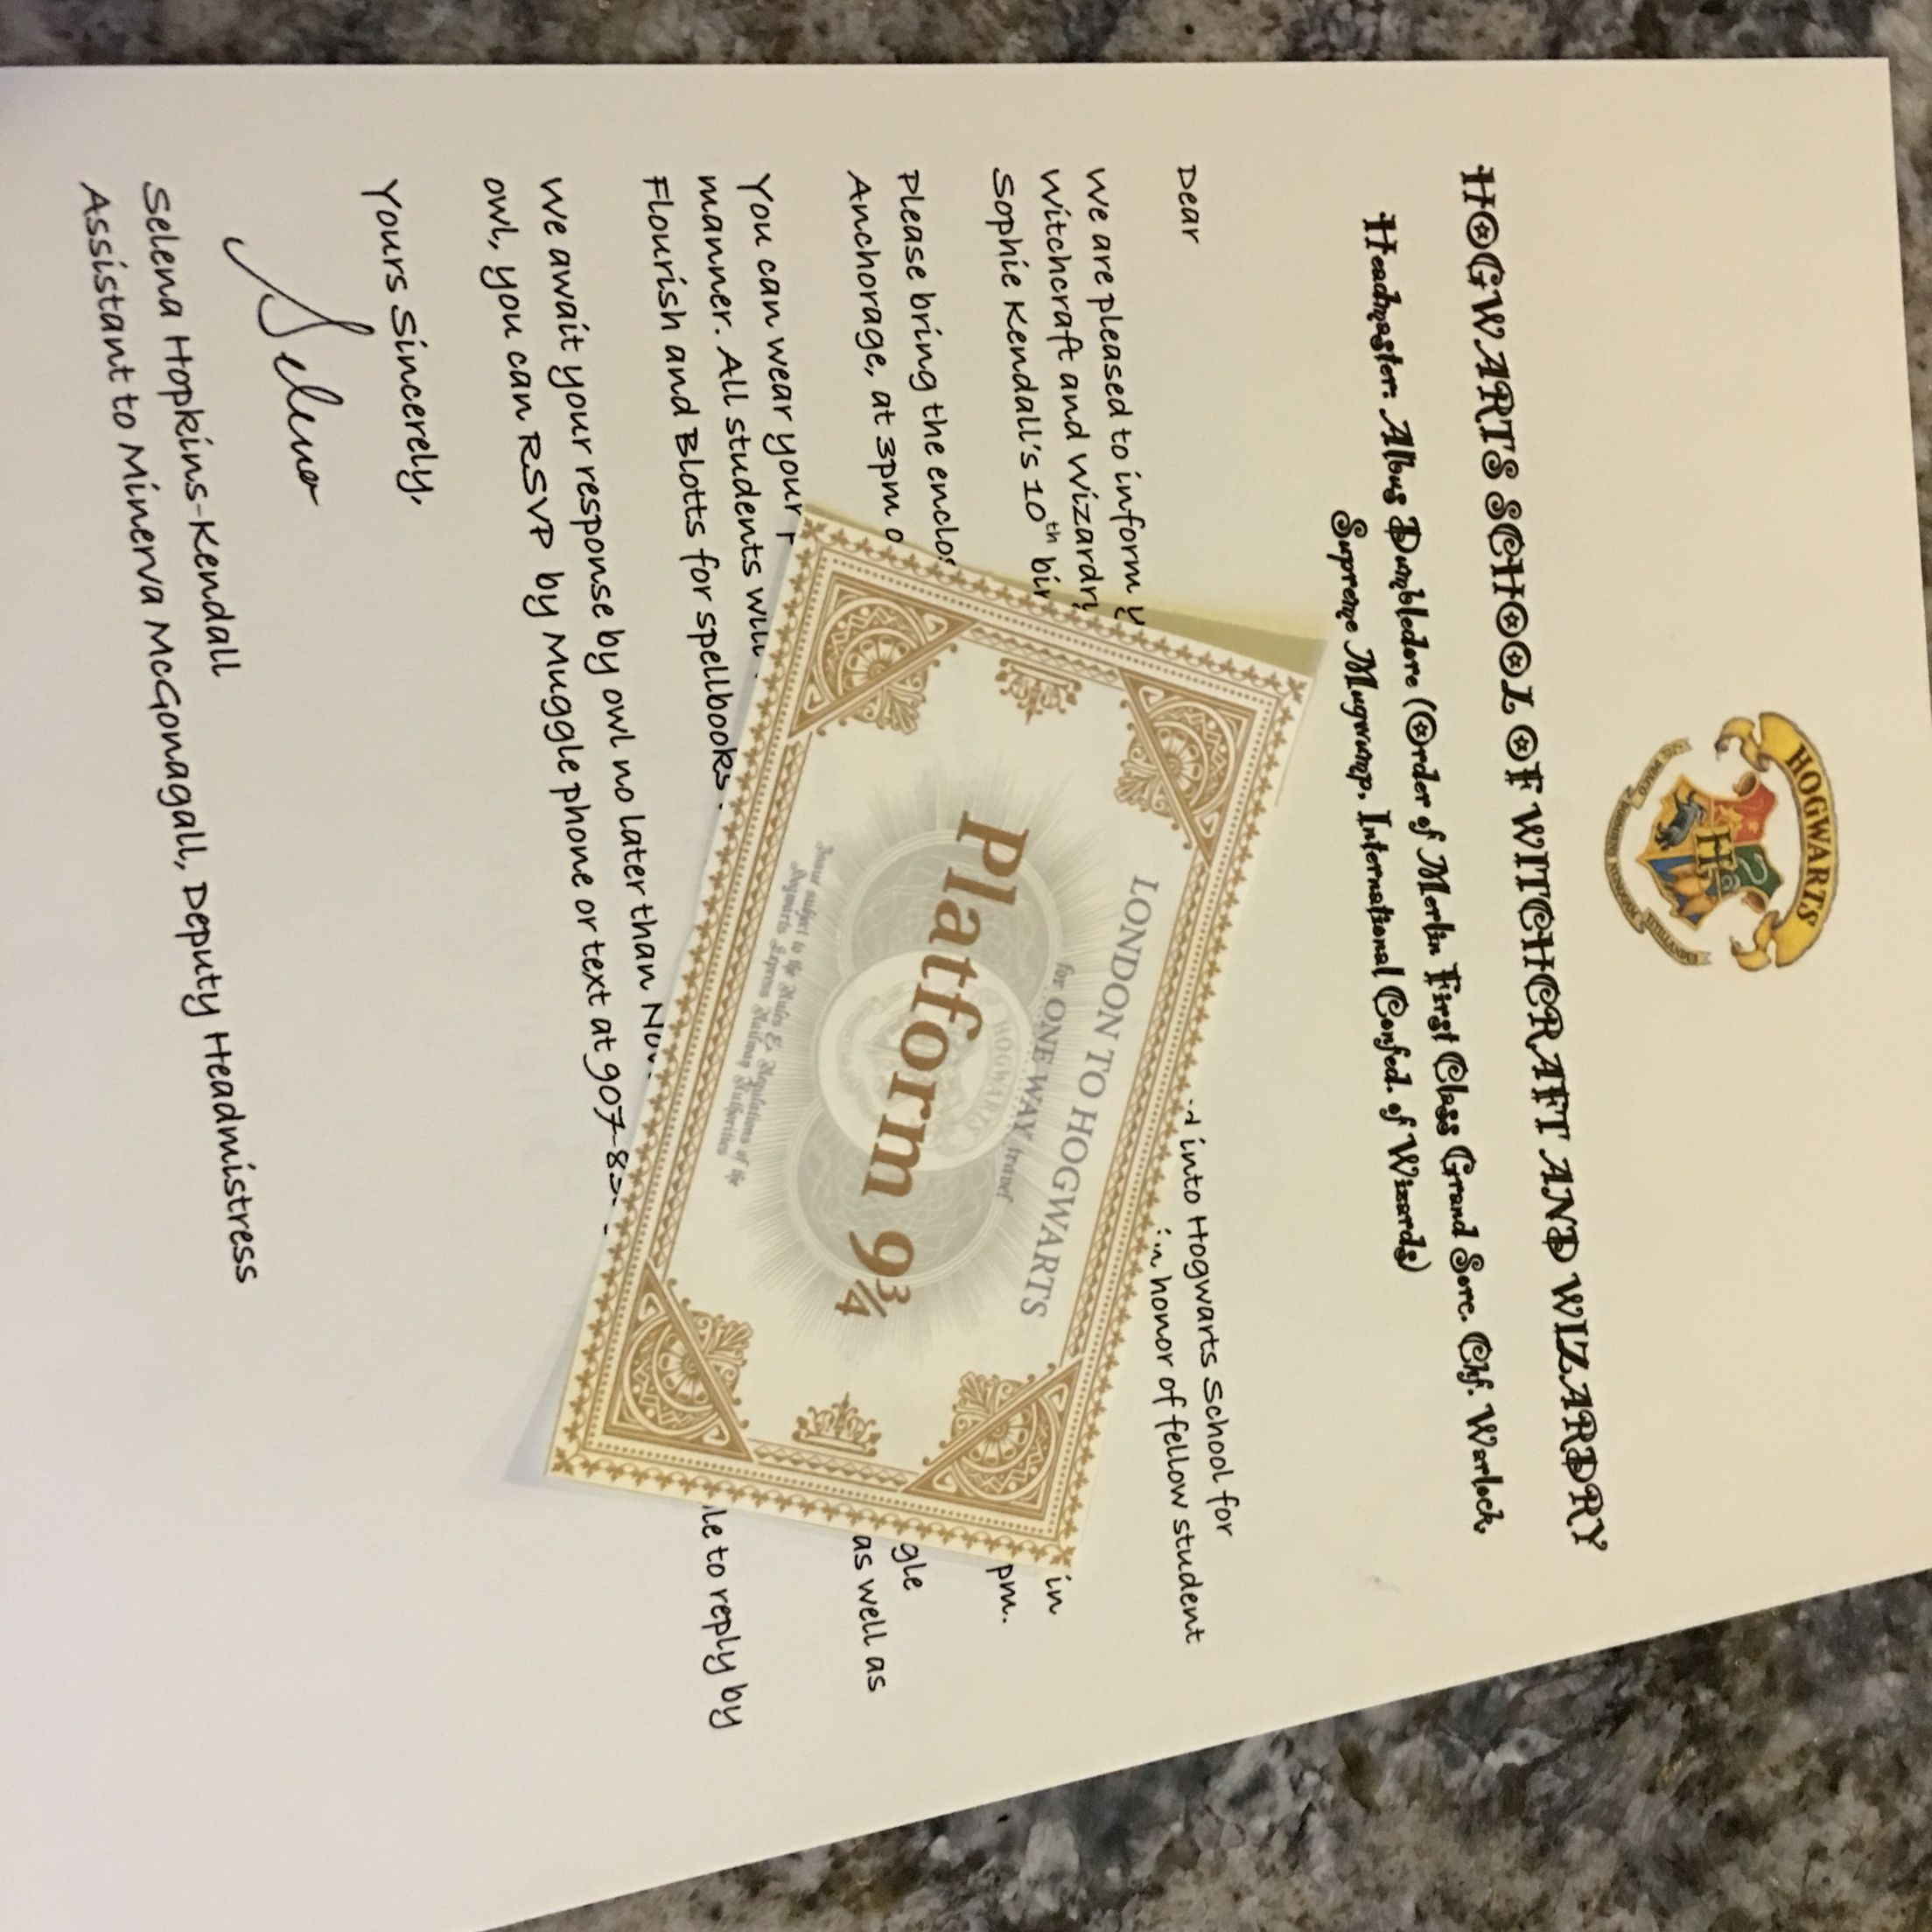 Hogwarts acceptance letters & train tickets - invitations to Sophie's birthday party!